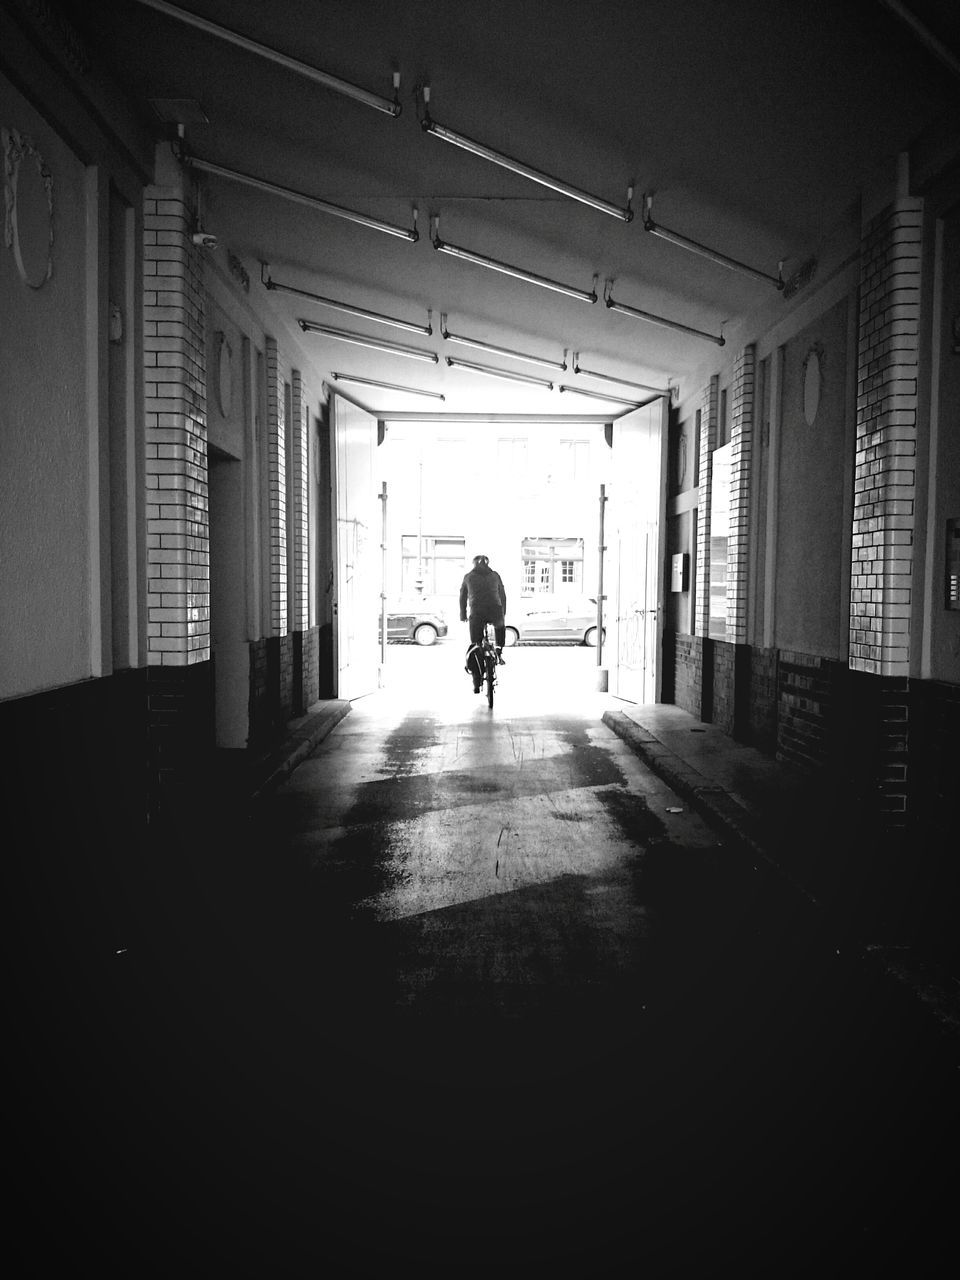 Man Riding Bicycle On Footpath Amidst Buildings